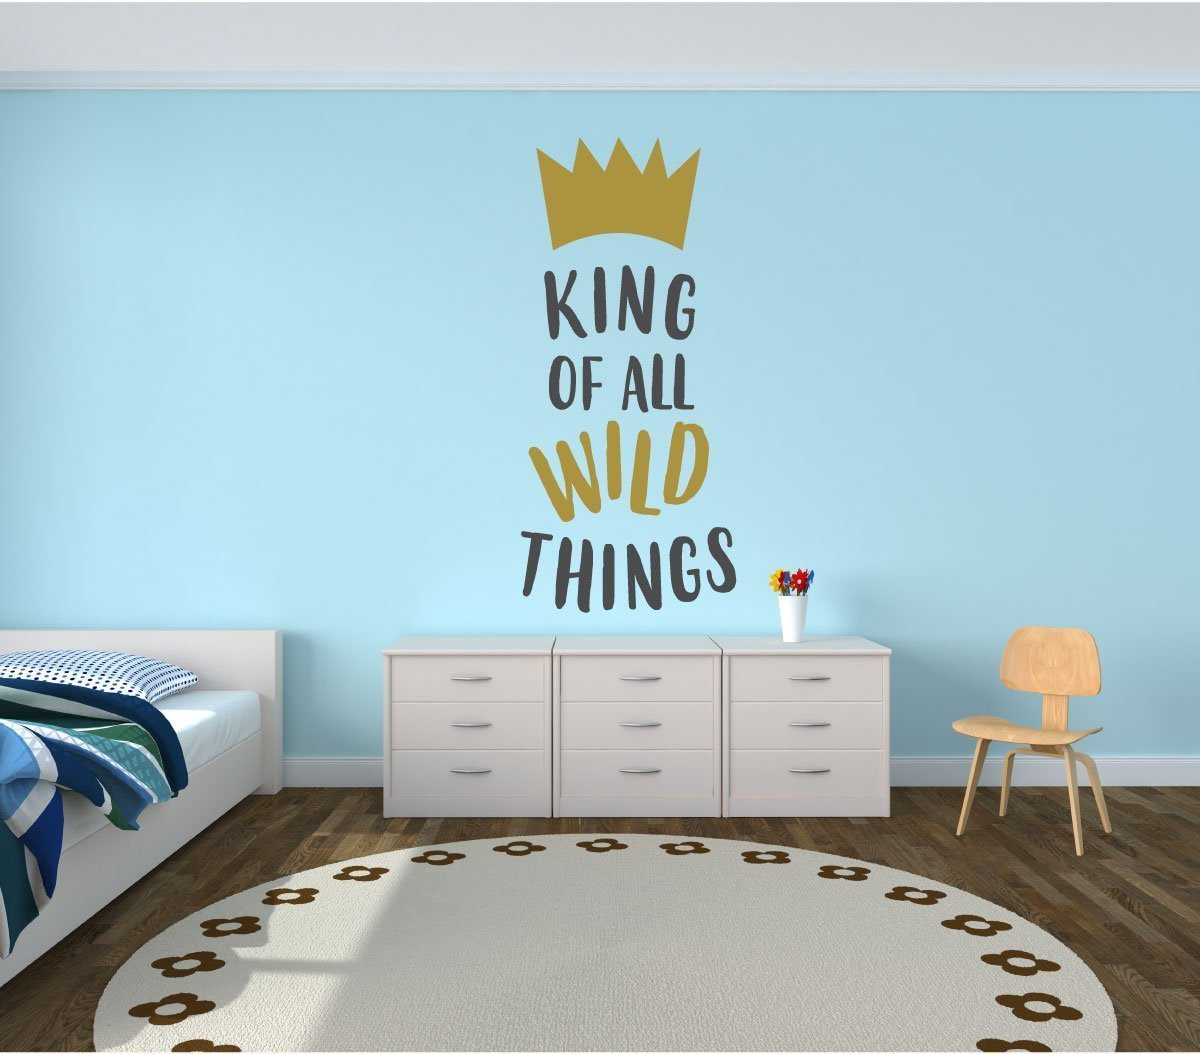 Wall Decal For Kids - King Of Wild Things - Where The Wild Things Are Theme Room - Crown Design - Decor for Children's Bedroom or Playroom